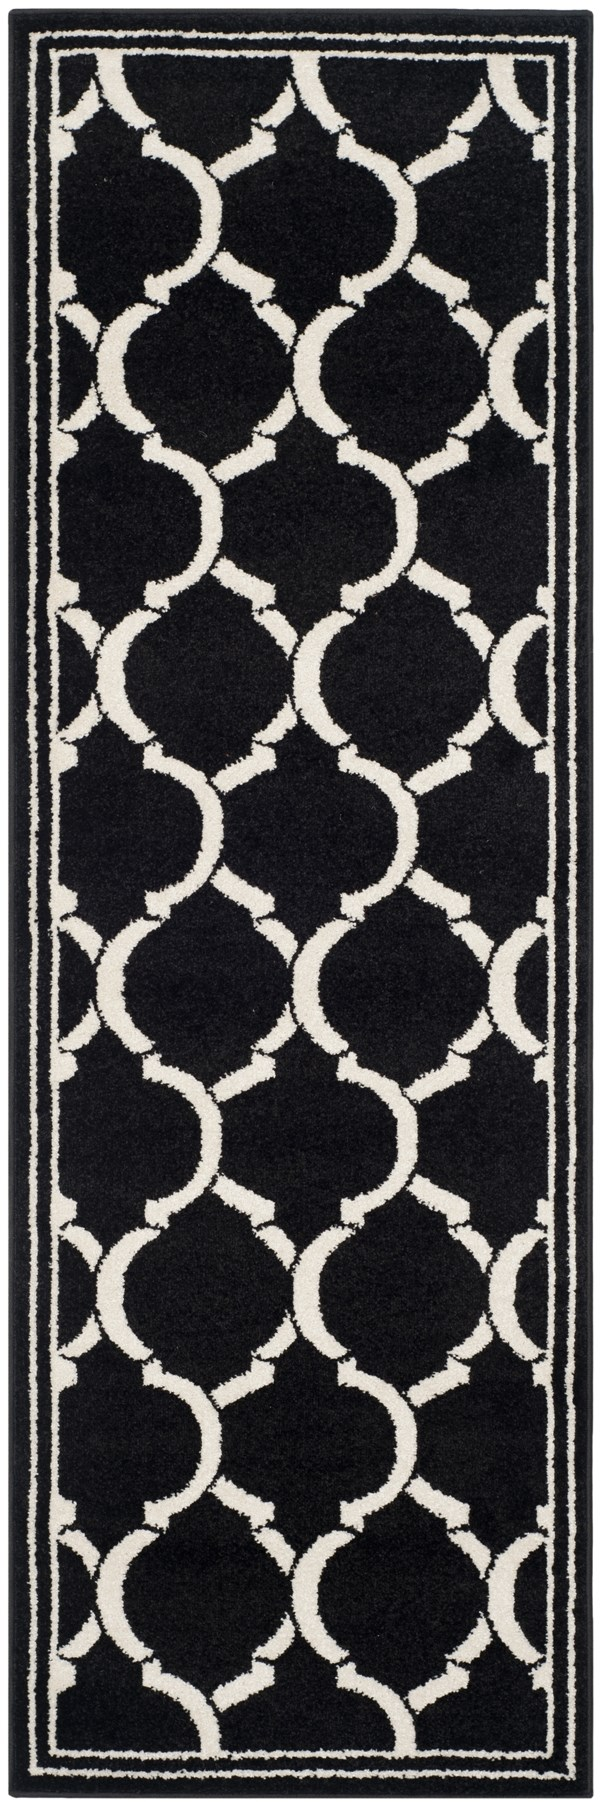 Anthracite, Ivory (G) Moroccan Area Rug